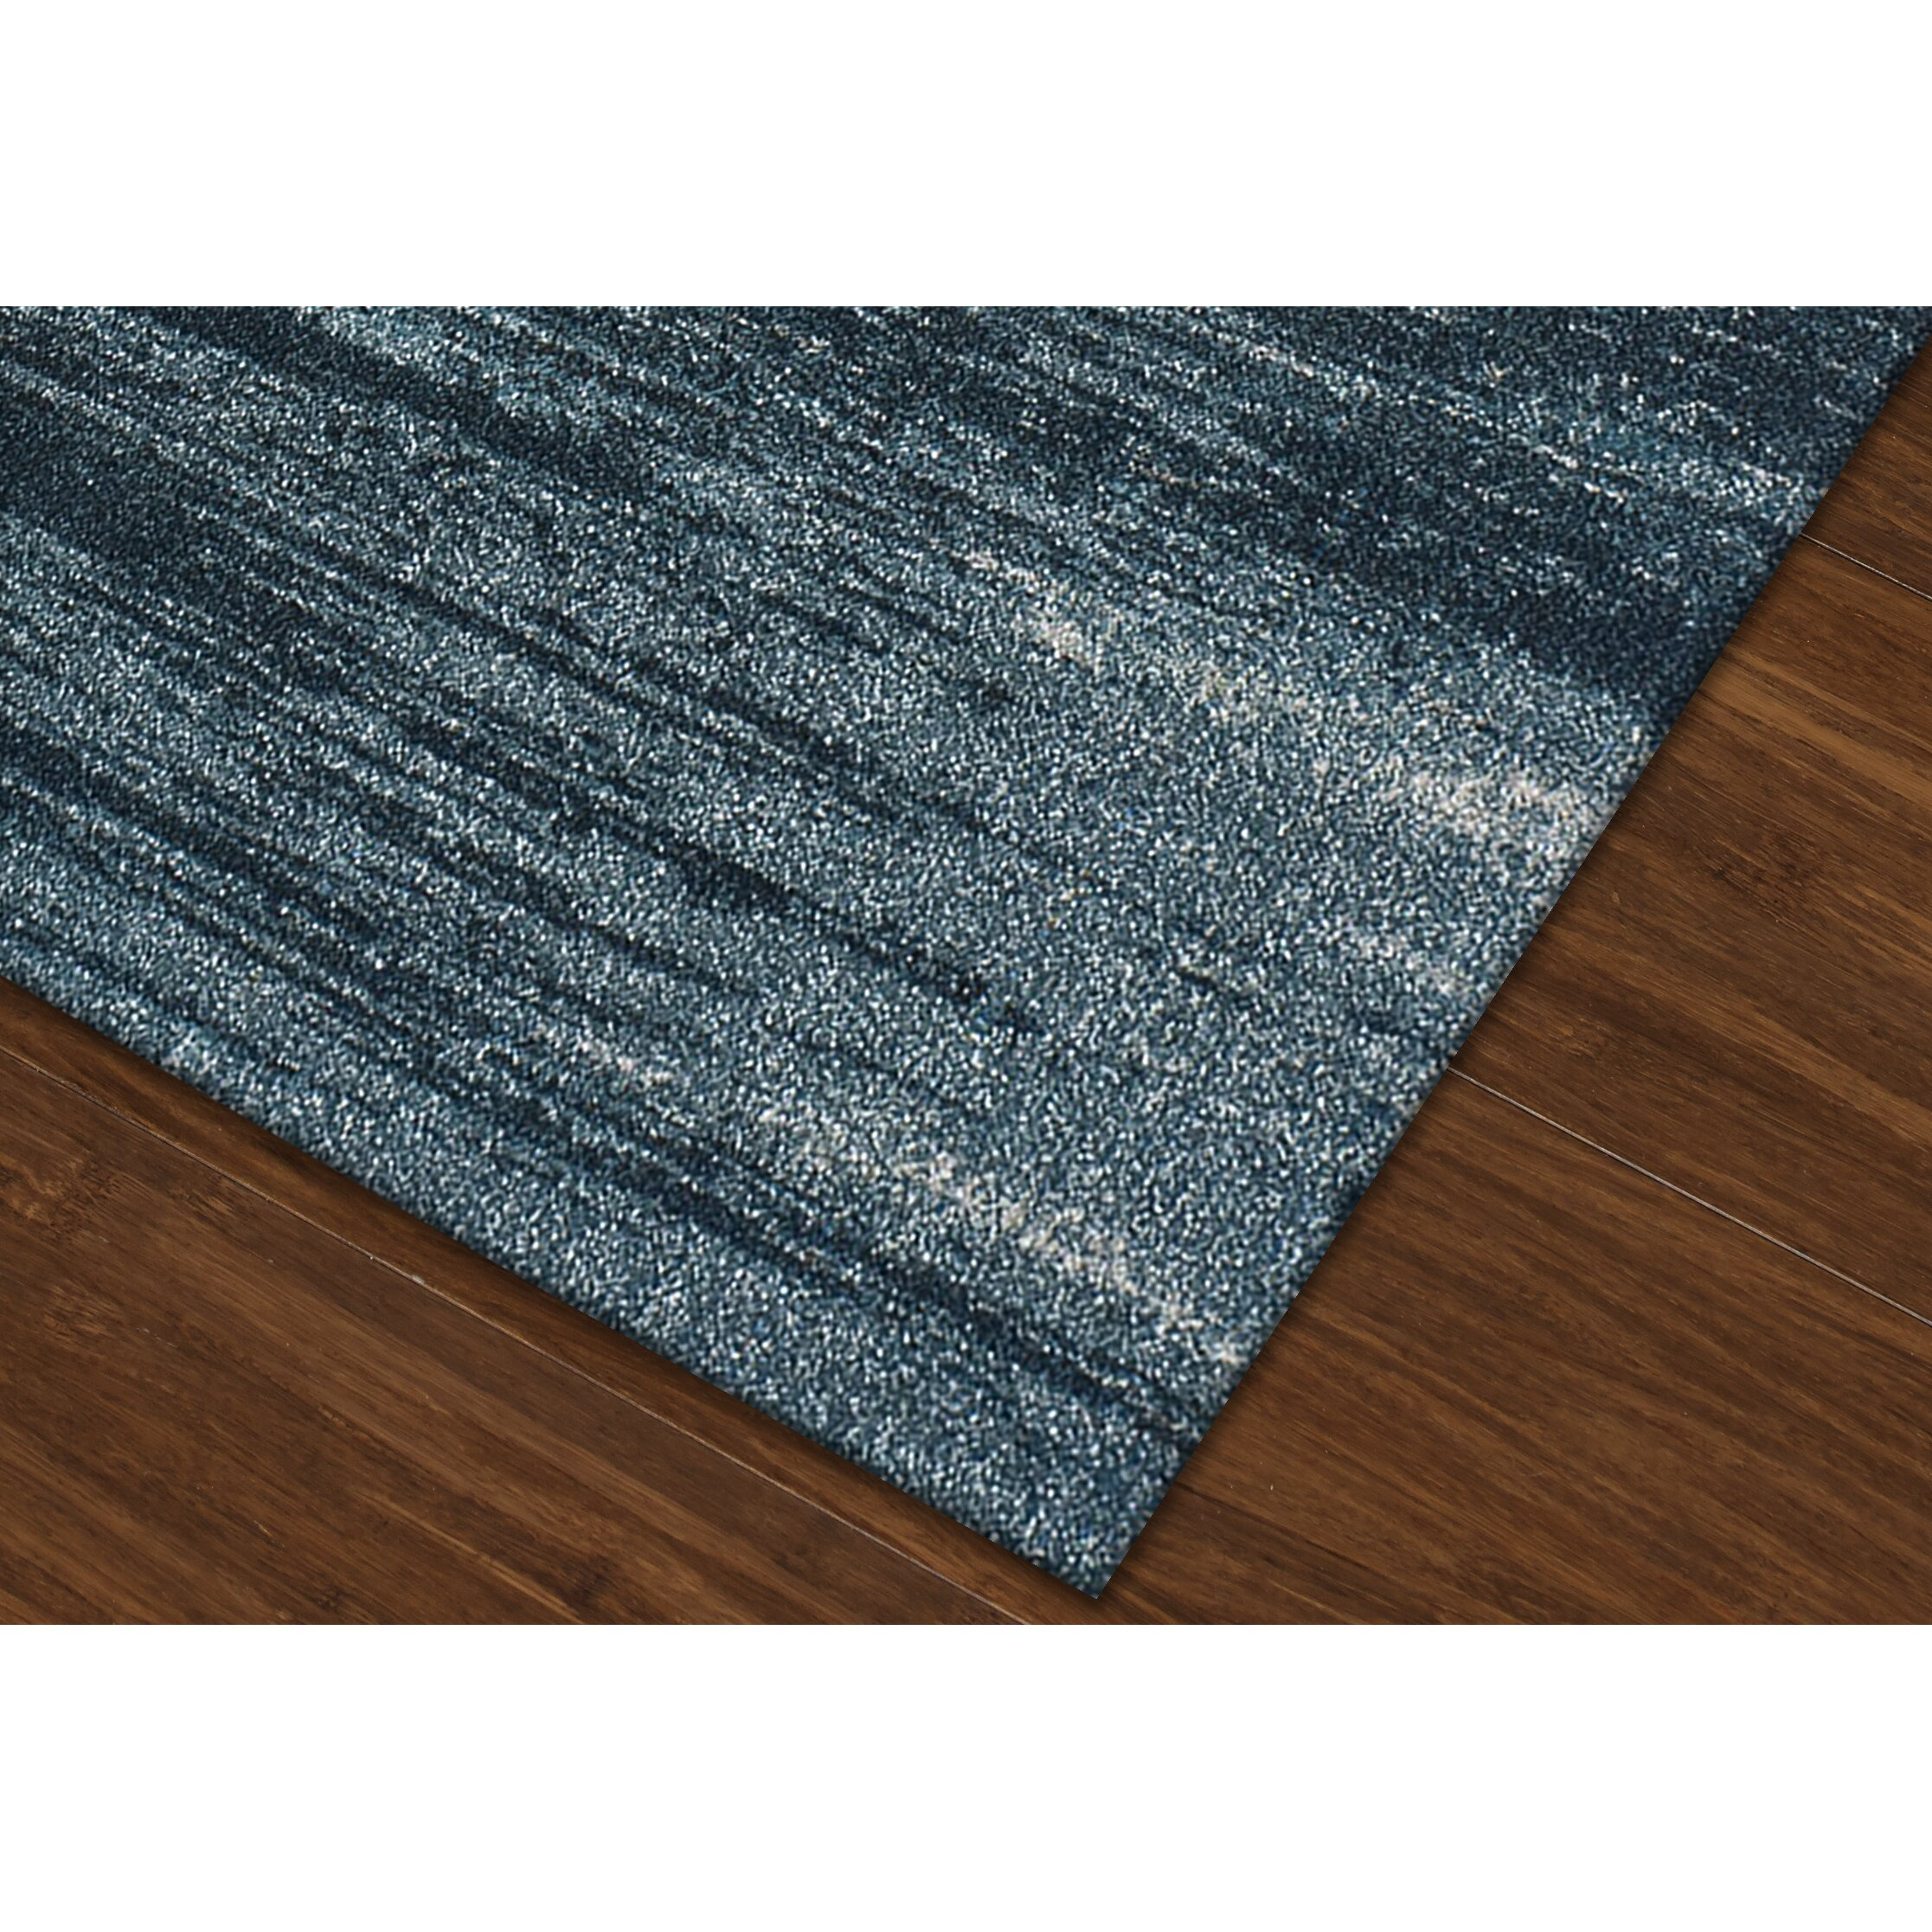 Dalyn Rug Co. Modern Greys Teal Area Rug & Reviews